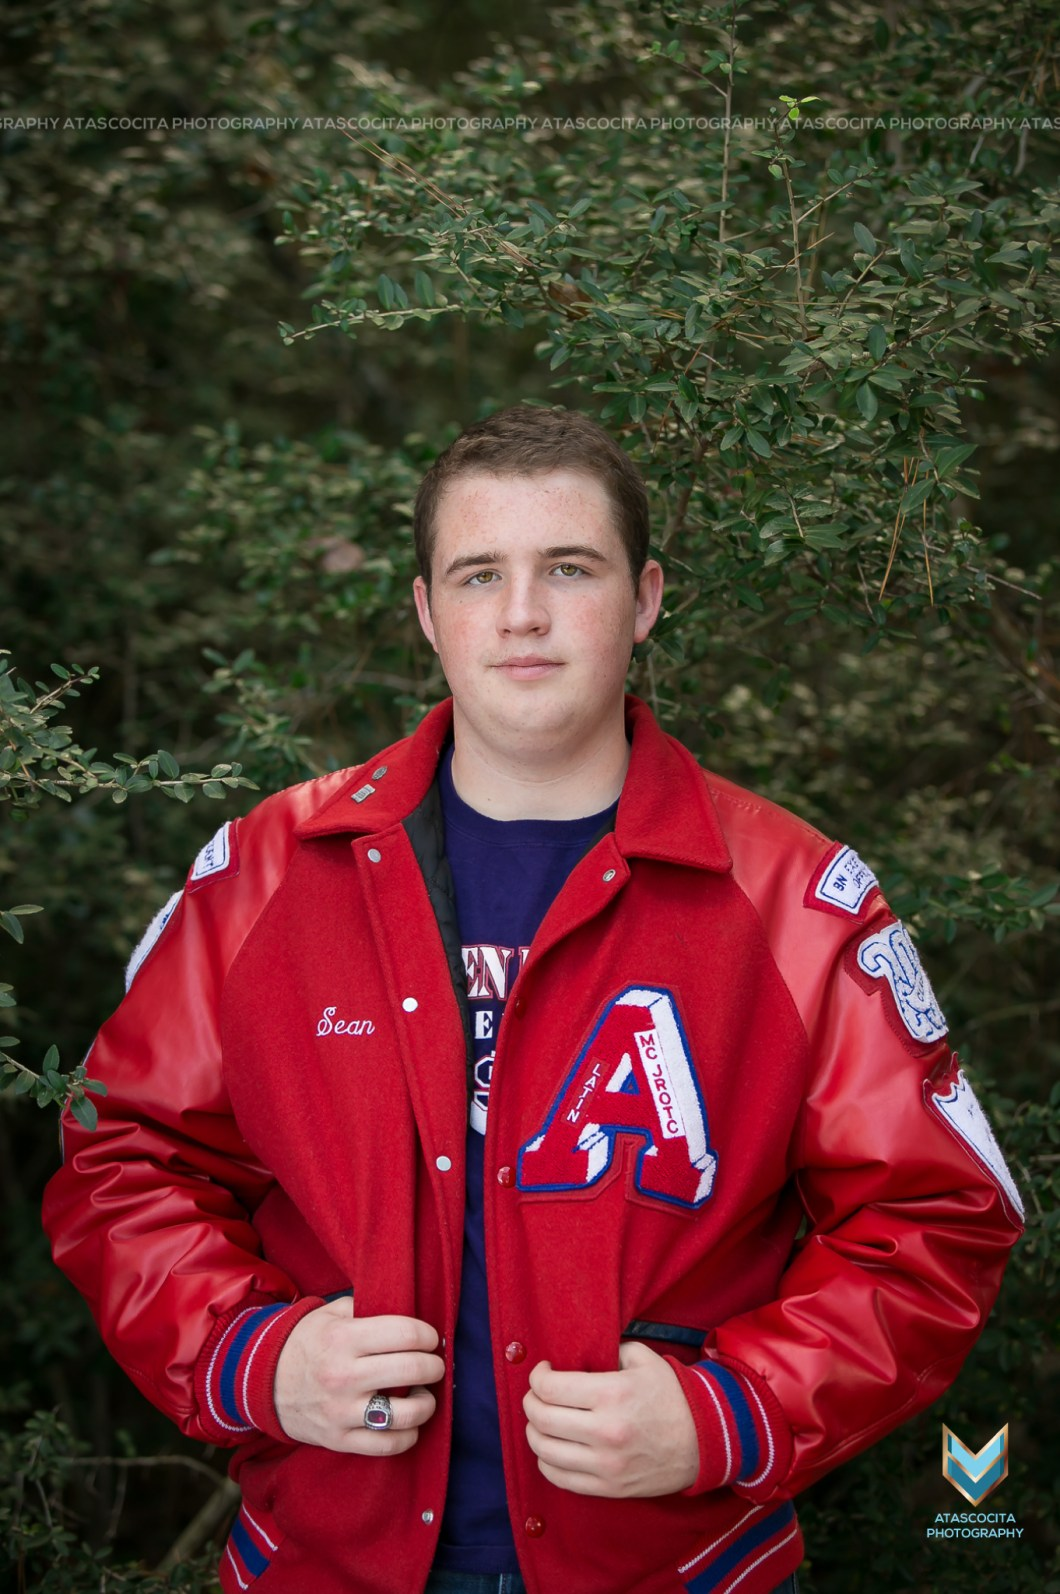 Letter Jacket Photo Atascocita High School Photographer